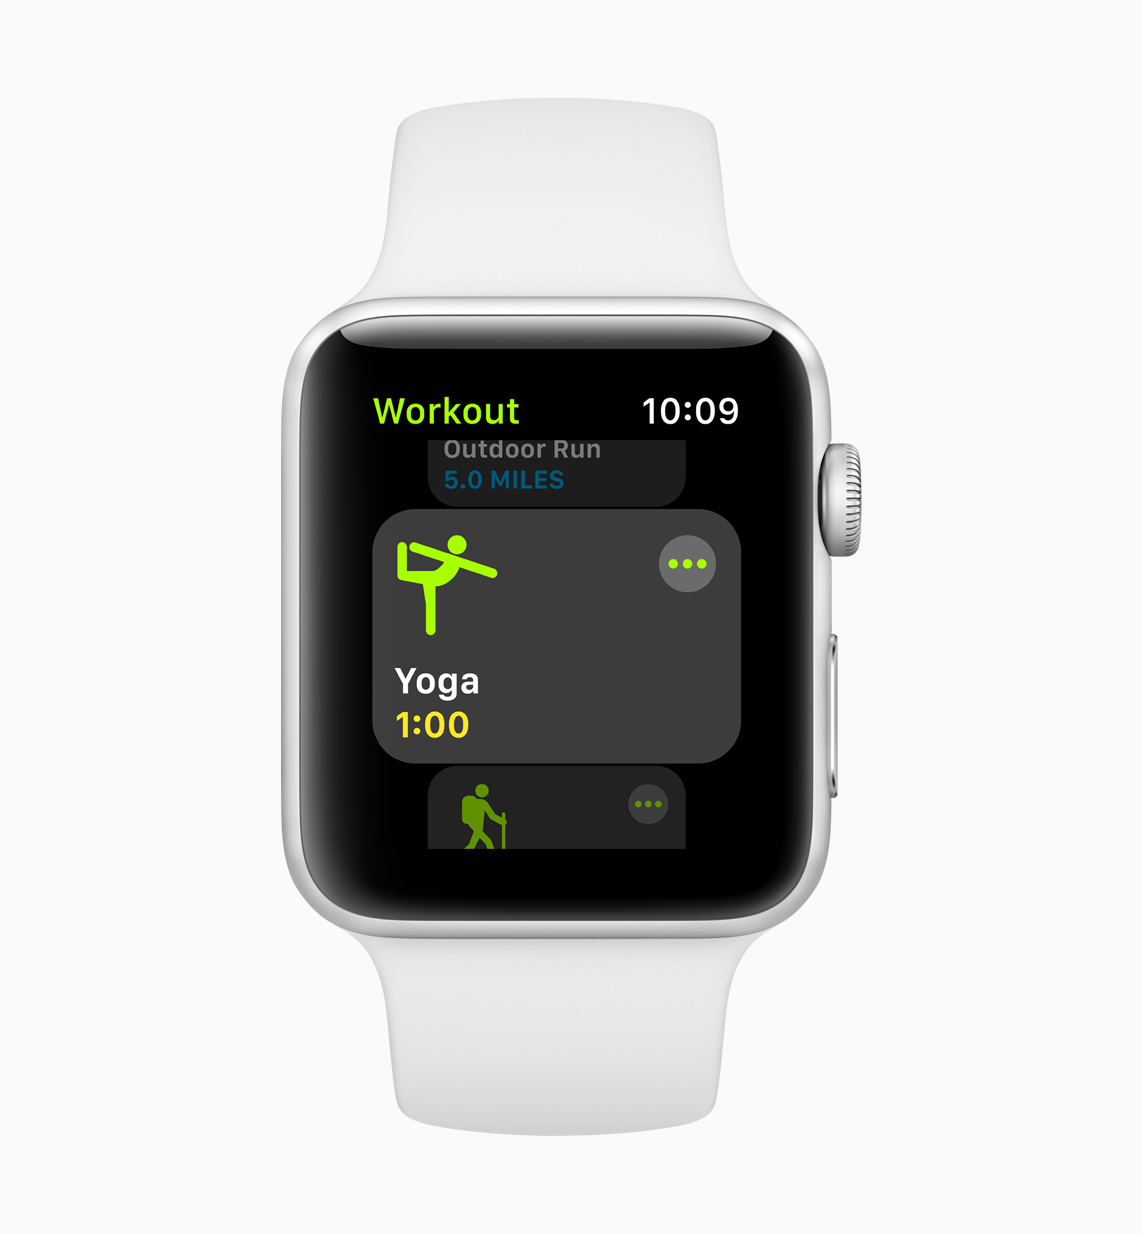 UI screen of the new workout mode on watchOS